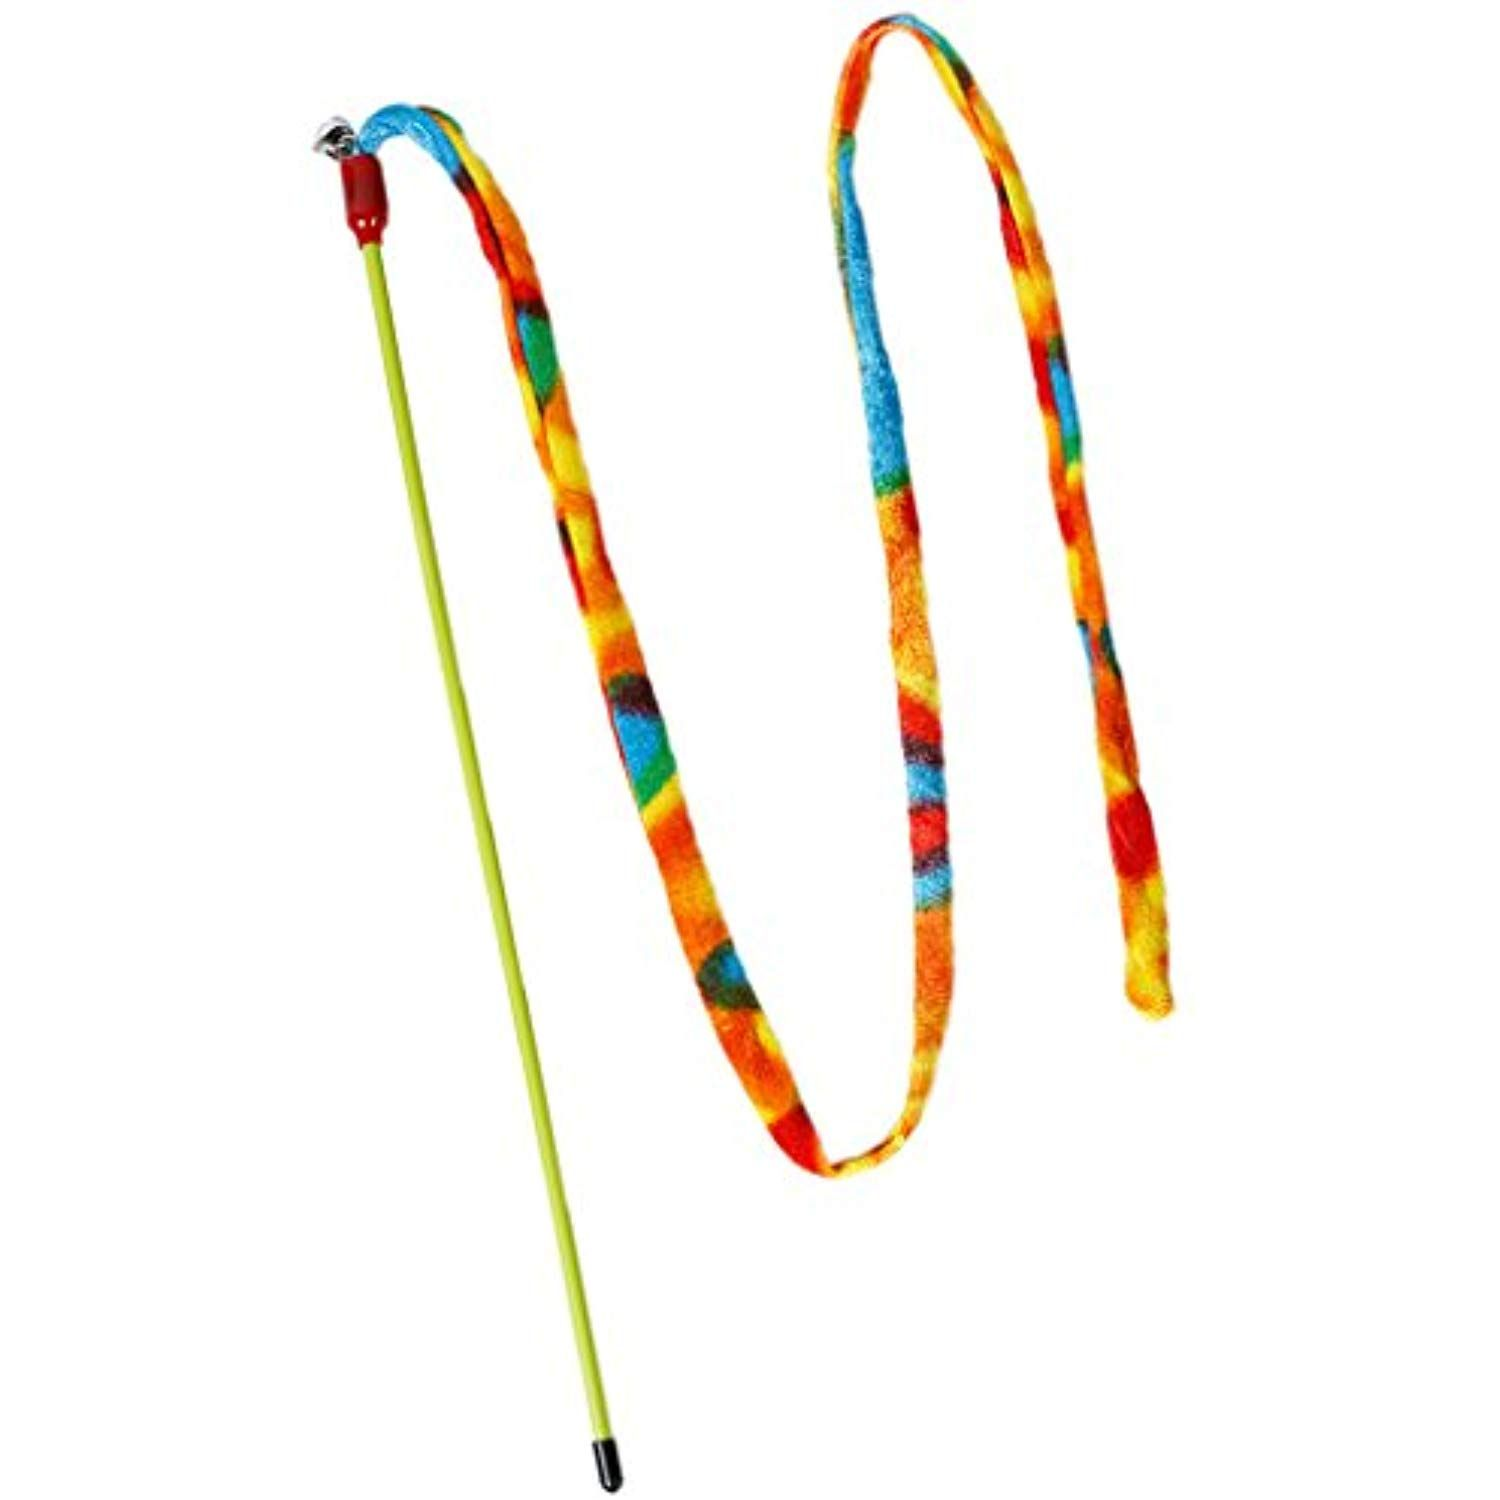 MonkeyJack Colorful Cat Kitten Teaser Wand Stick Chaser Rod Pet Activity Toys with Bell 1m Rope Rainbow Stripe